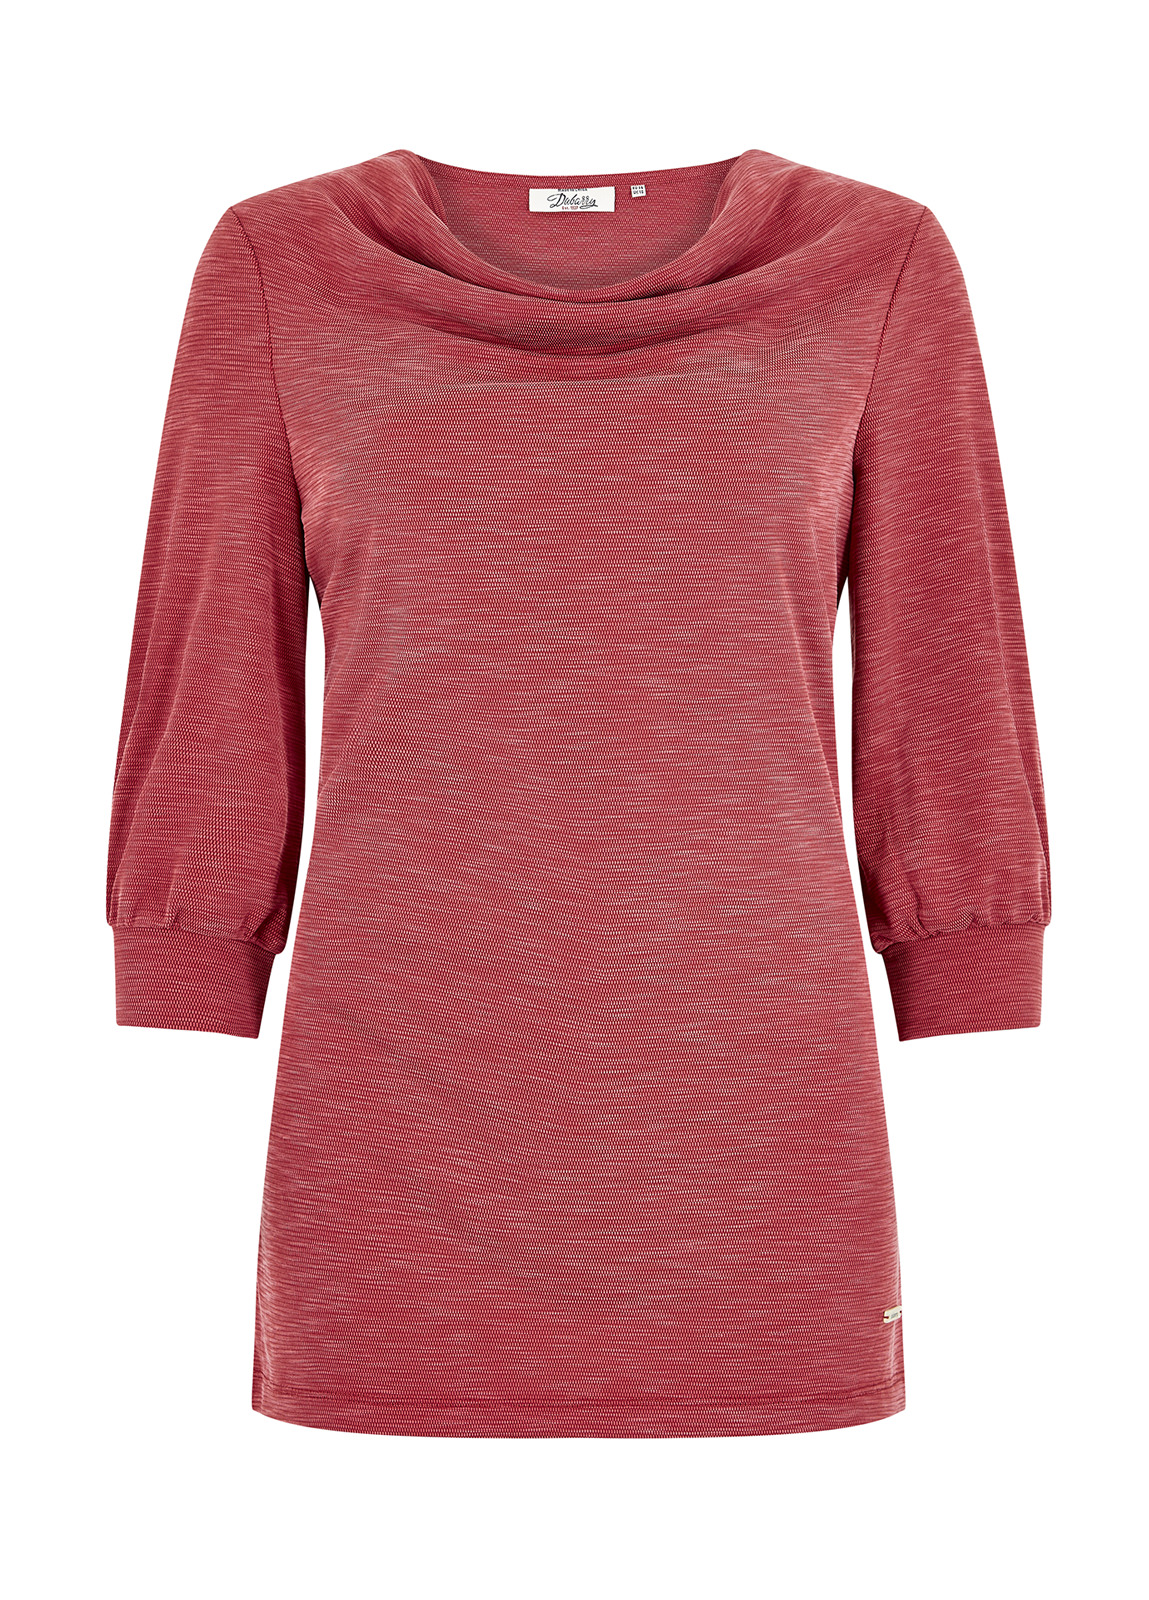 Dubarry_Ballymote Top - Ruby Red_Image_2